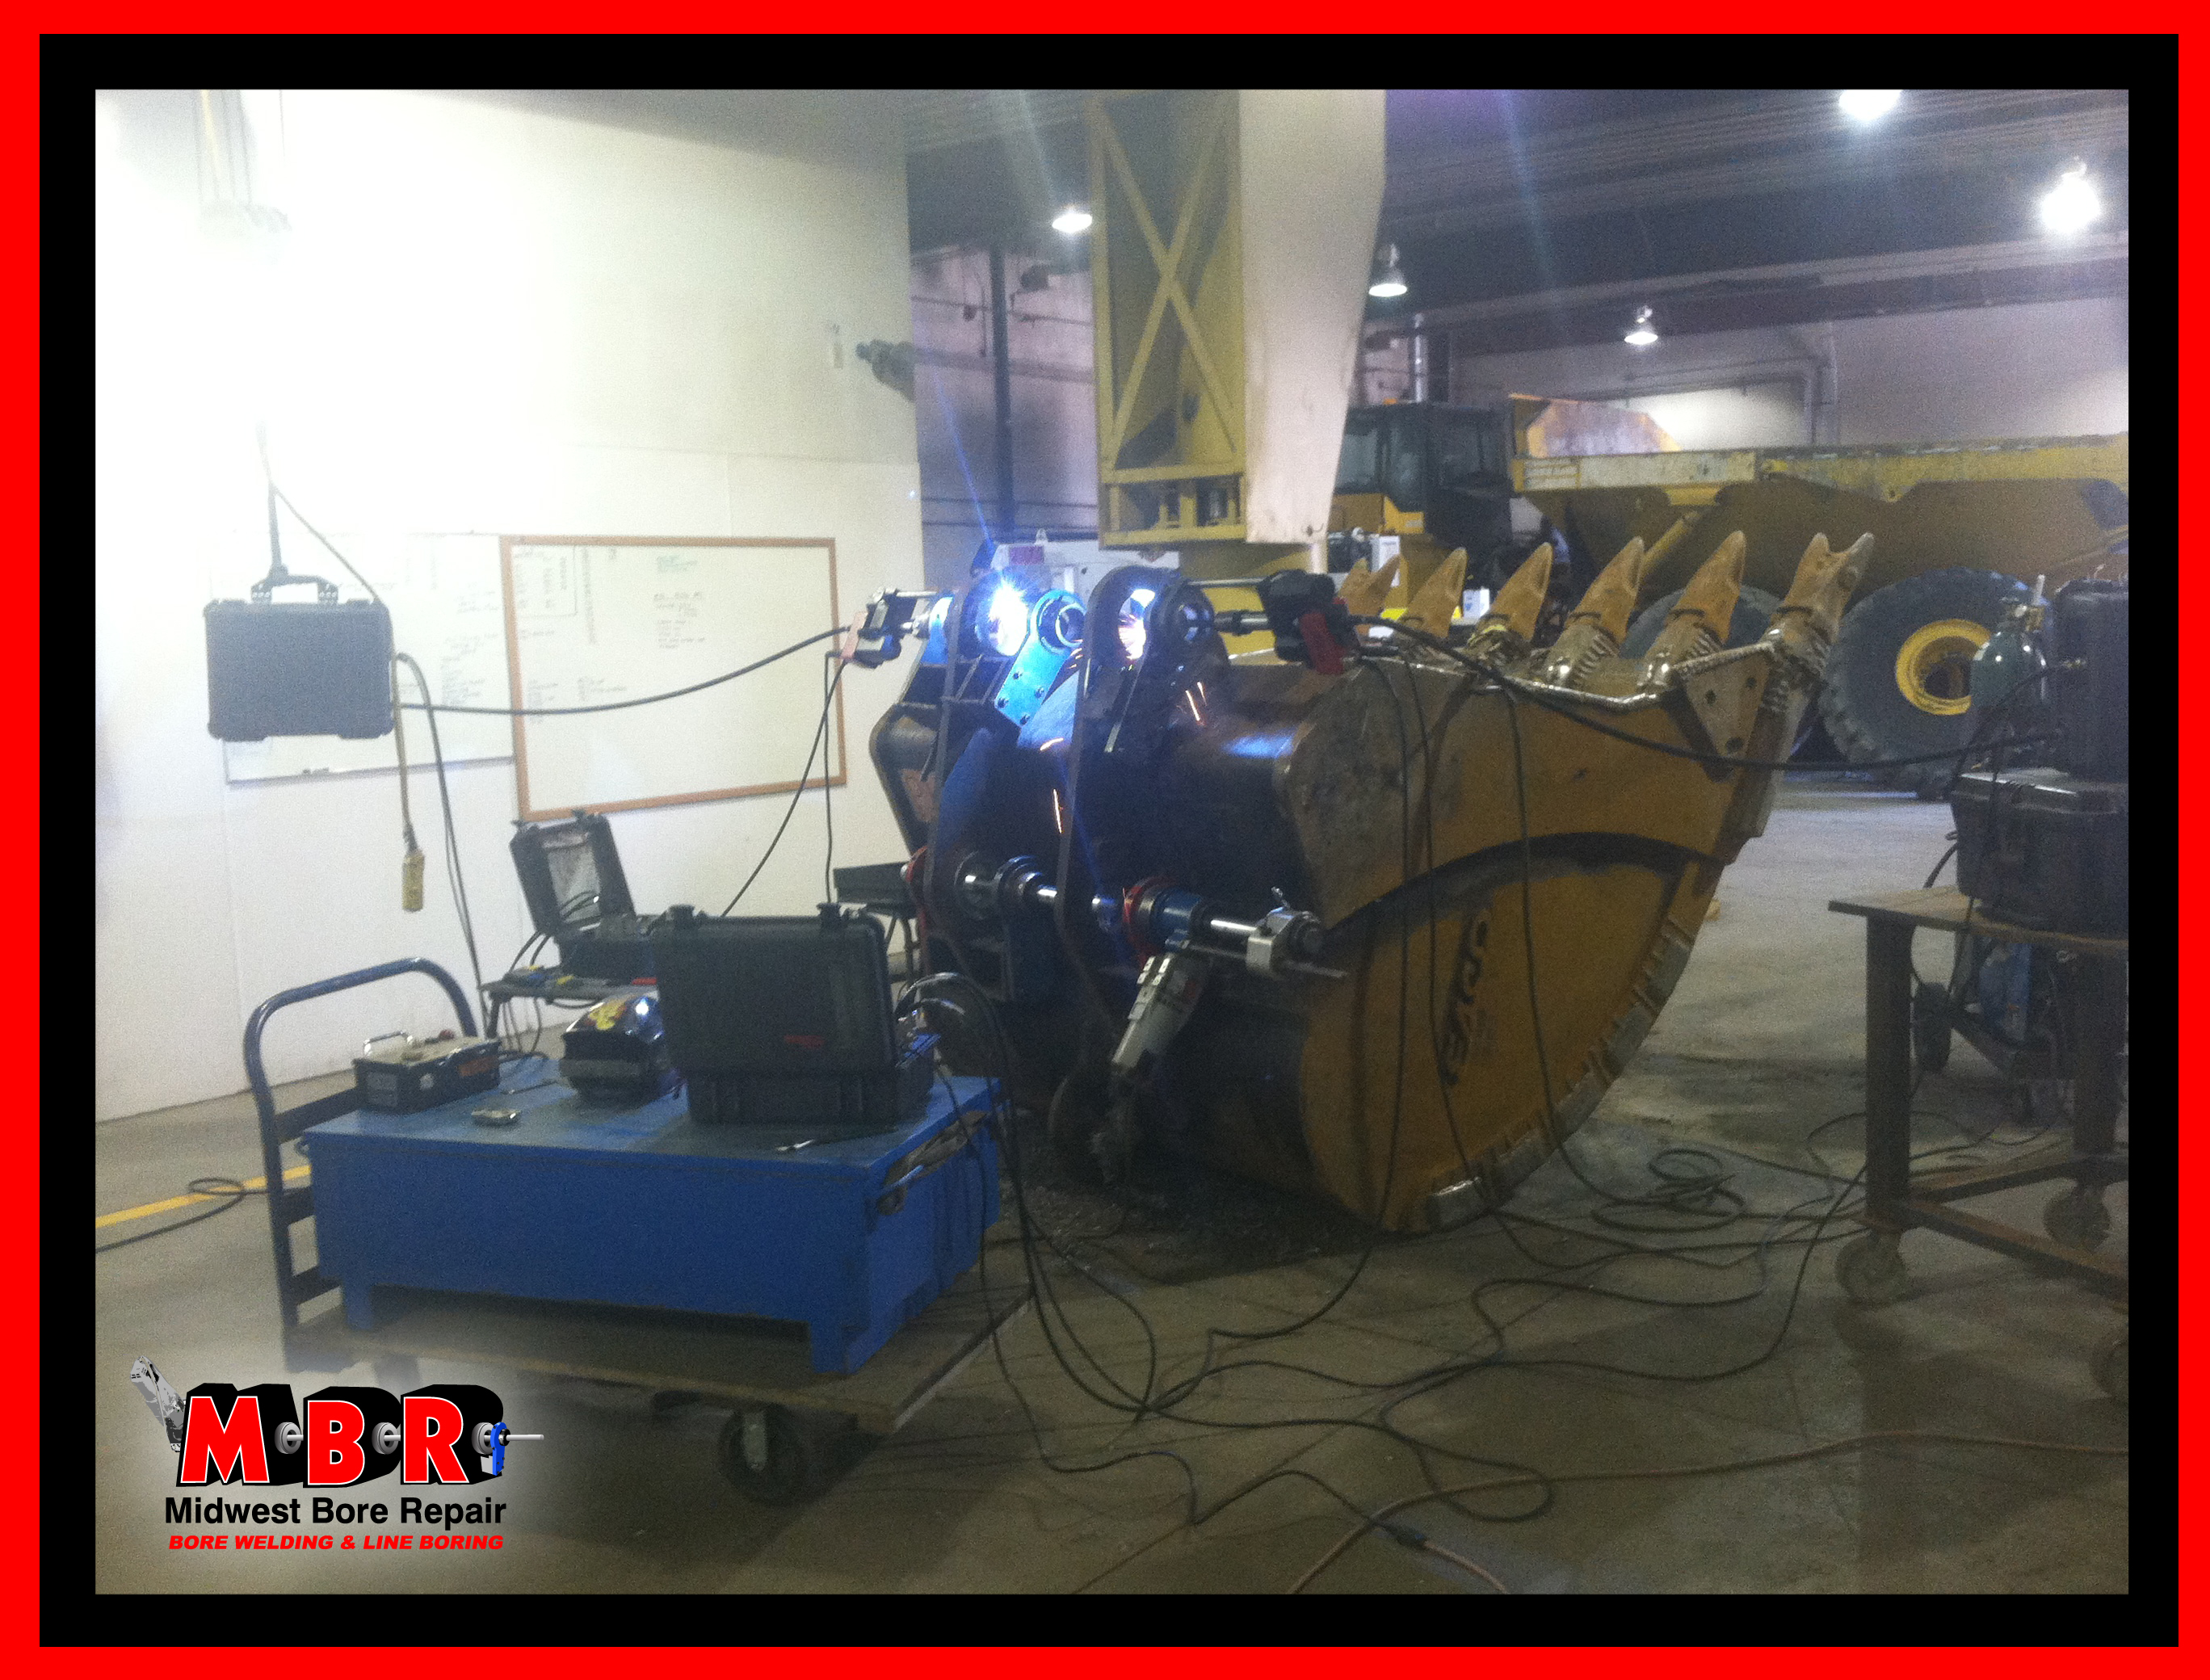 MBR Equipment